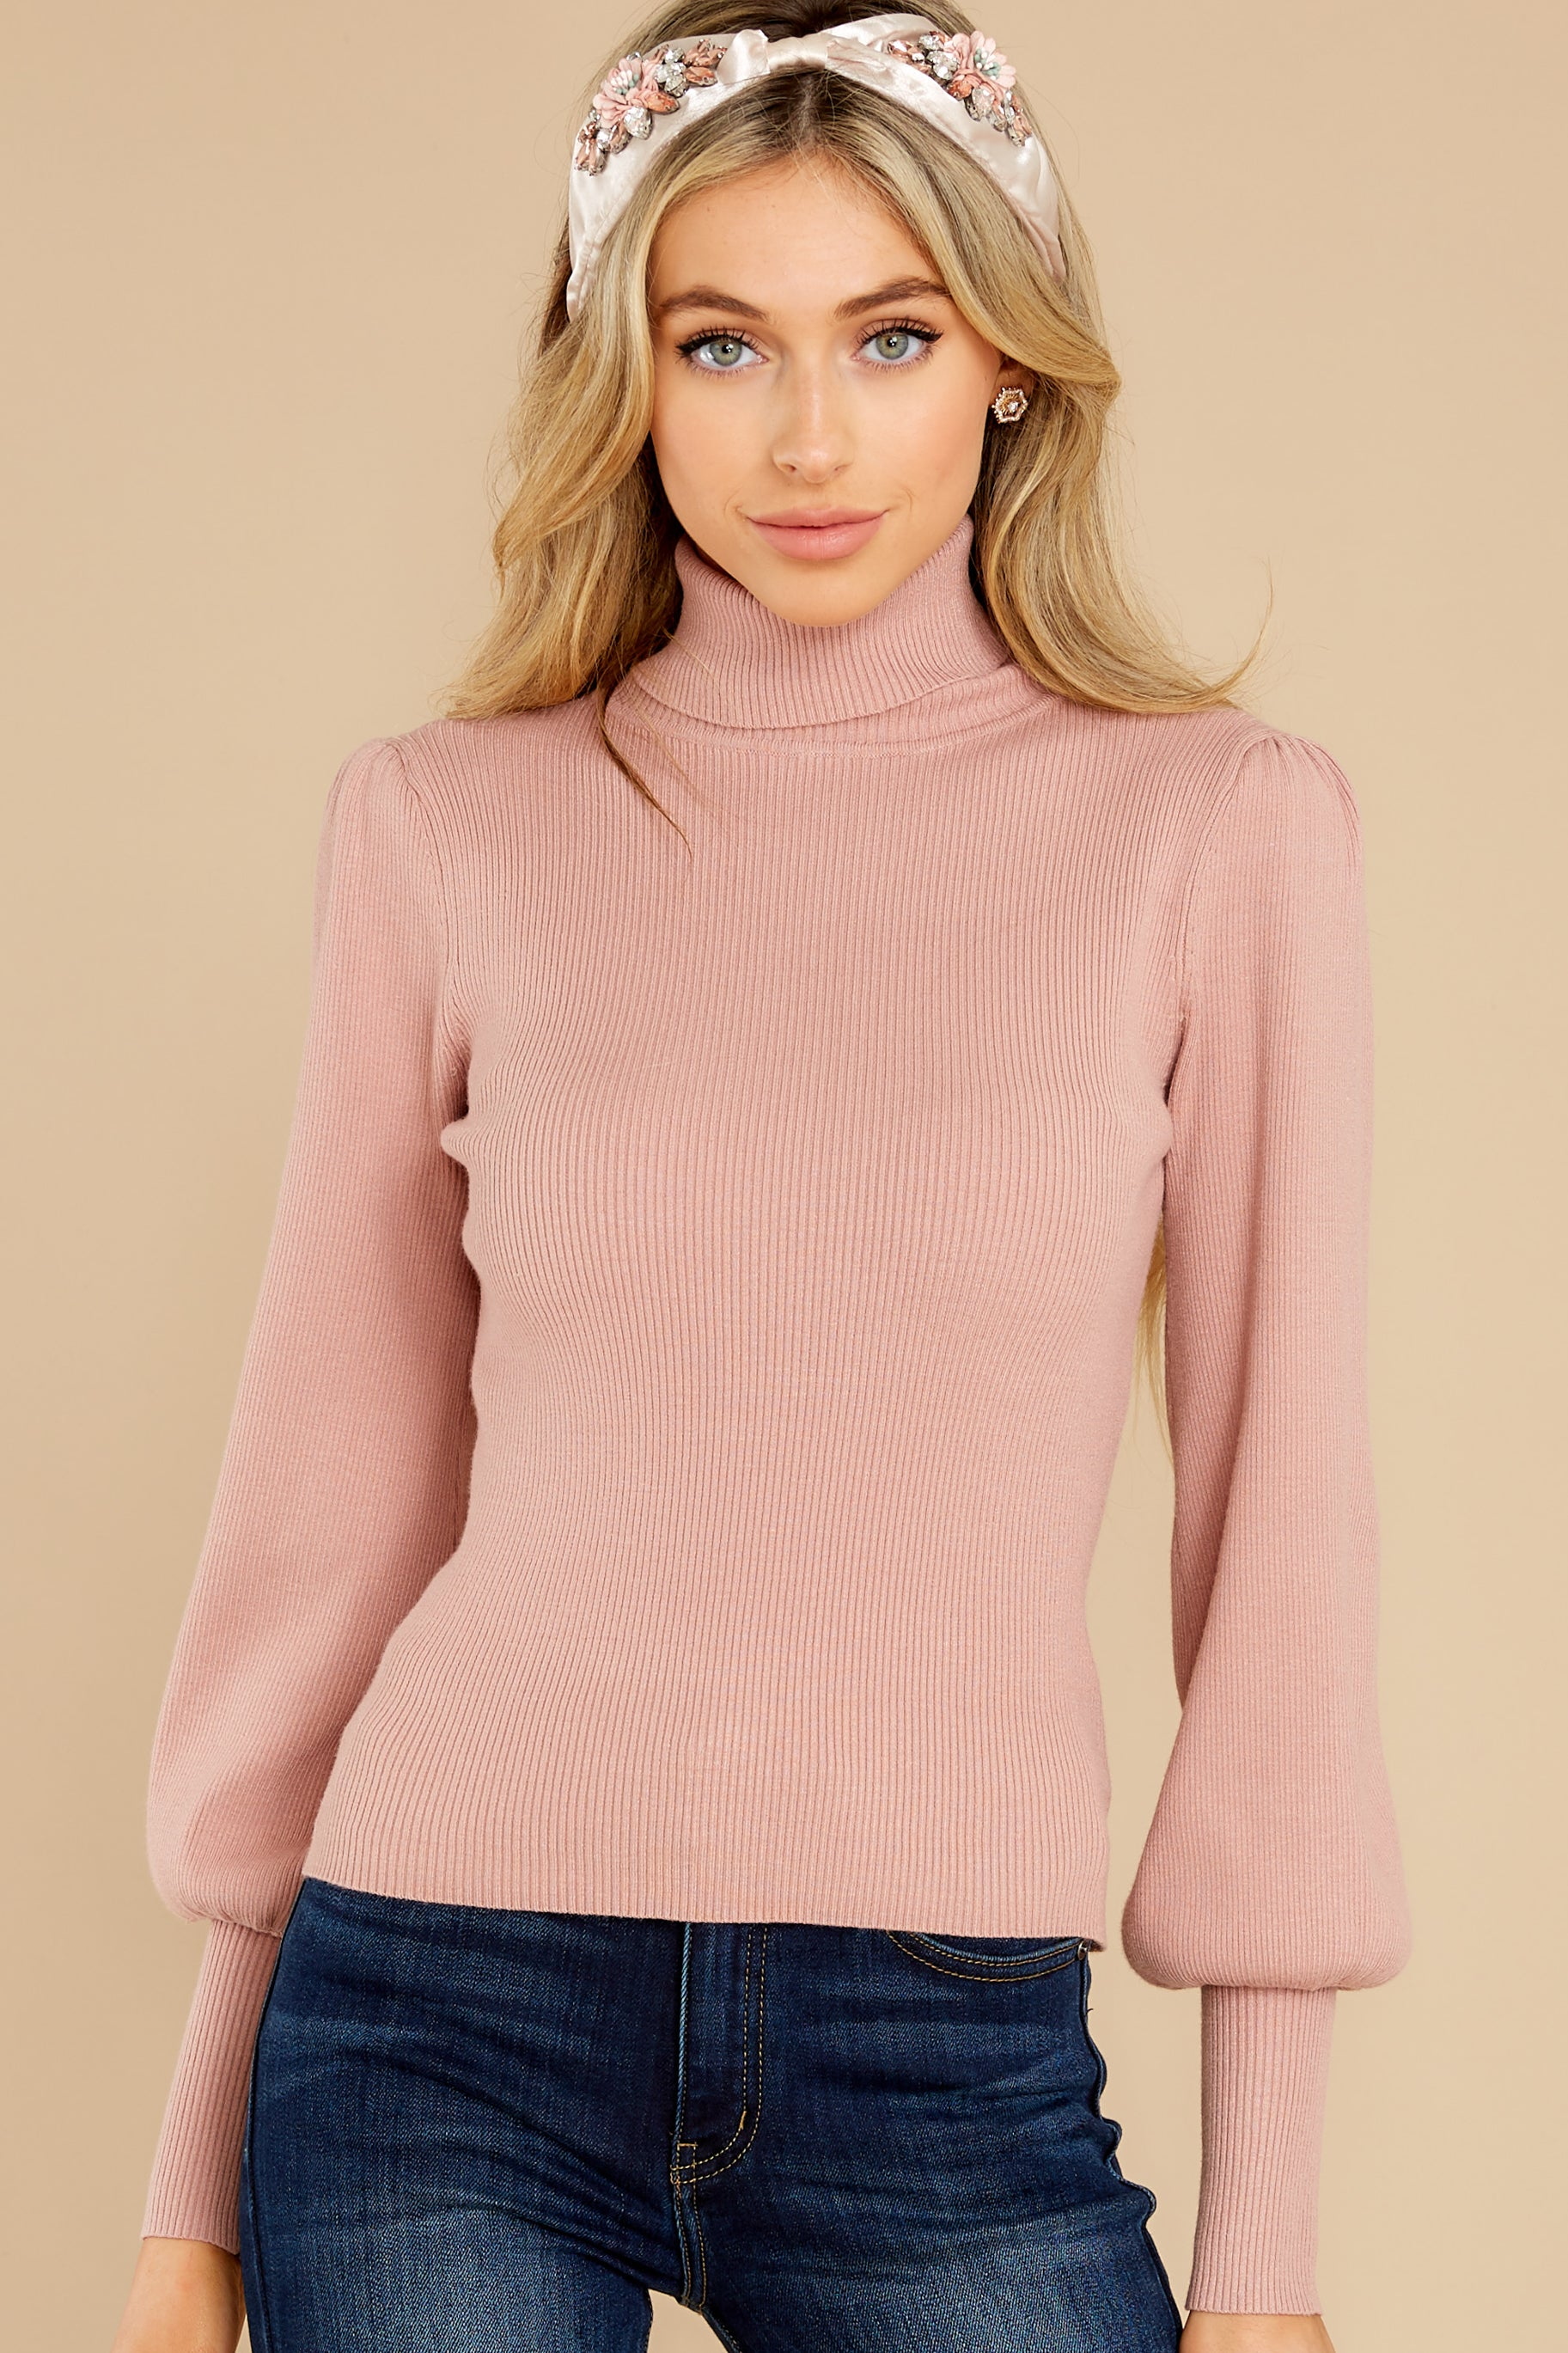 7 Waiting On Forever Mauve Blush Sweater at reddress.com